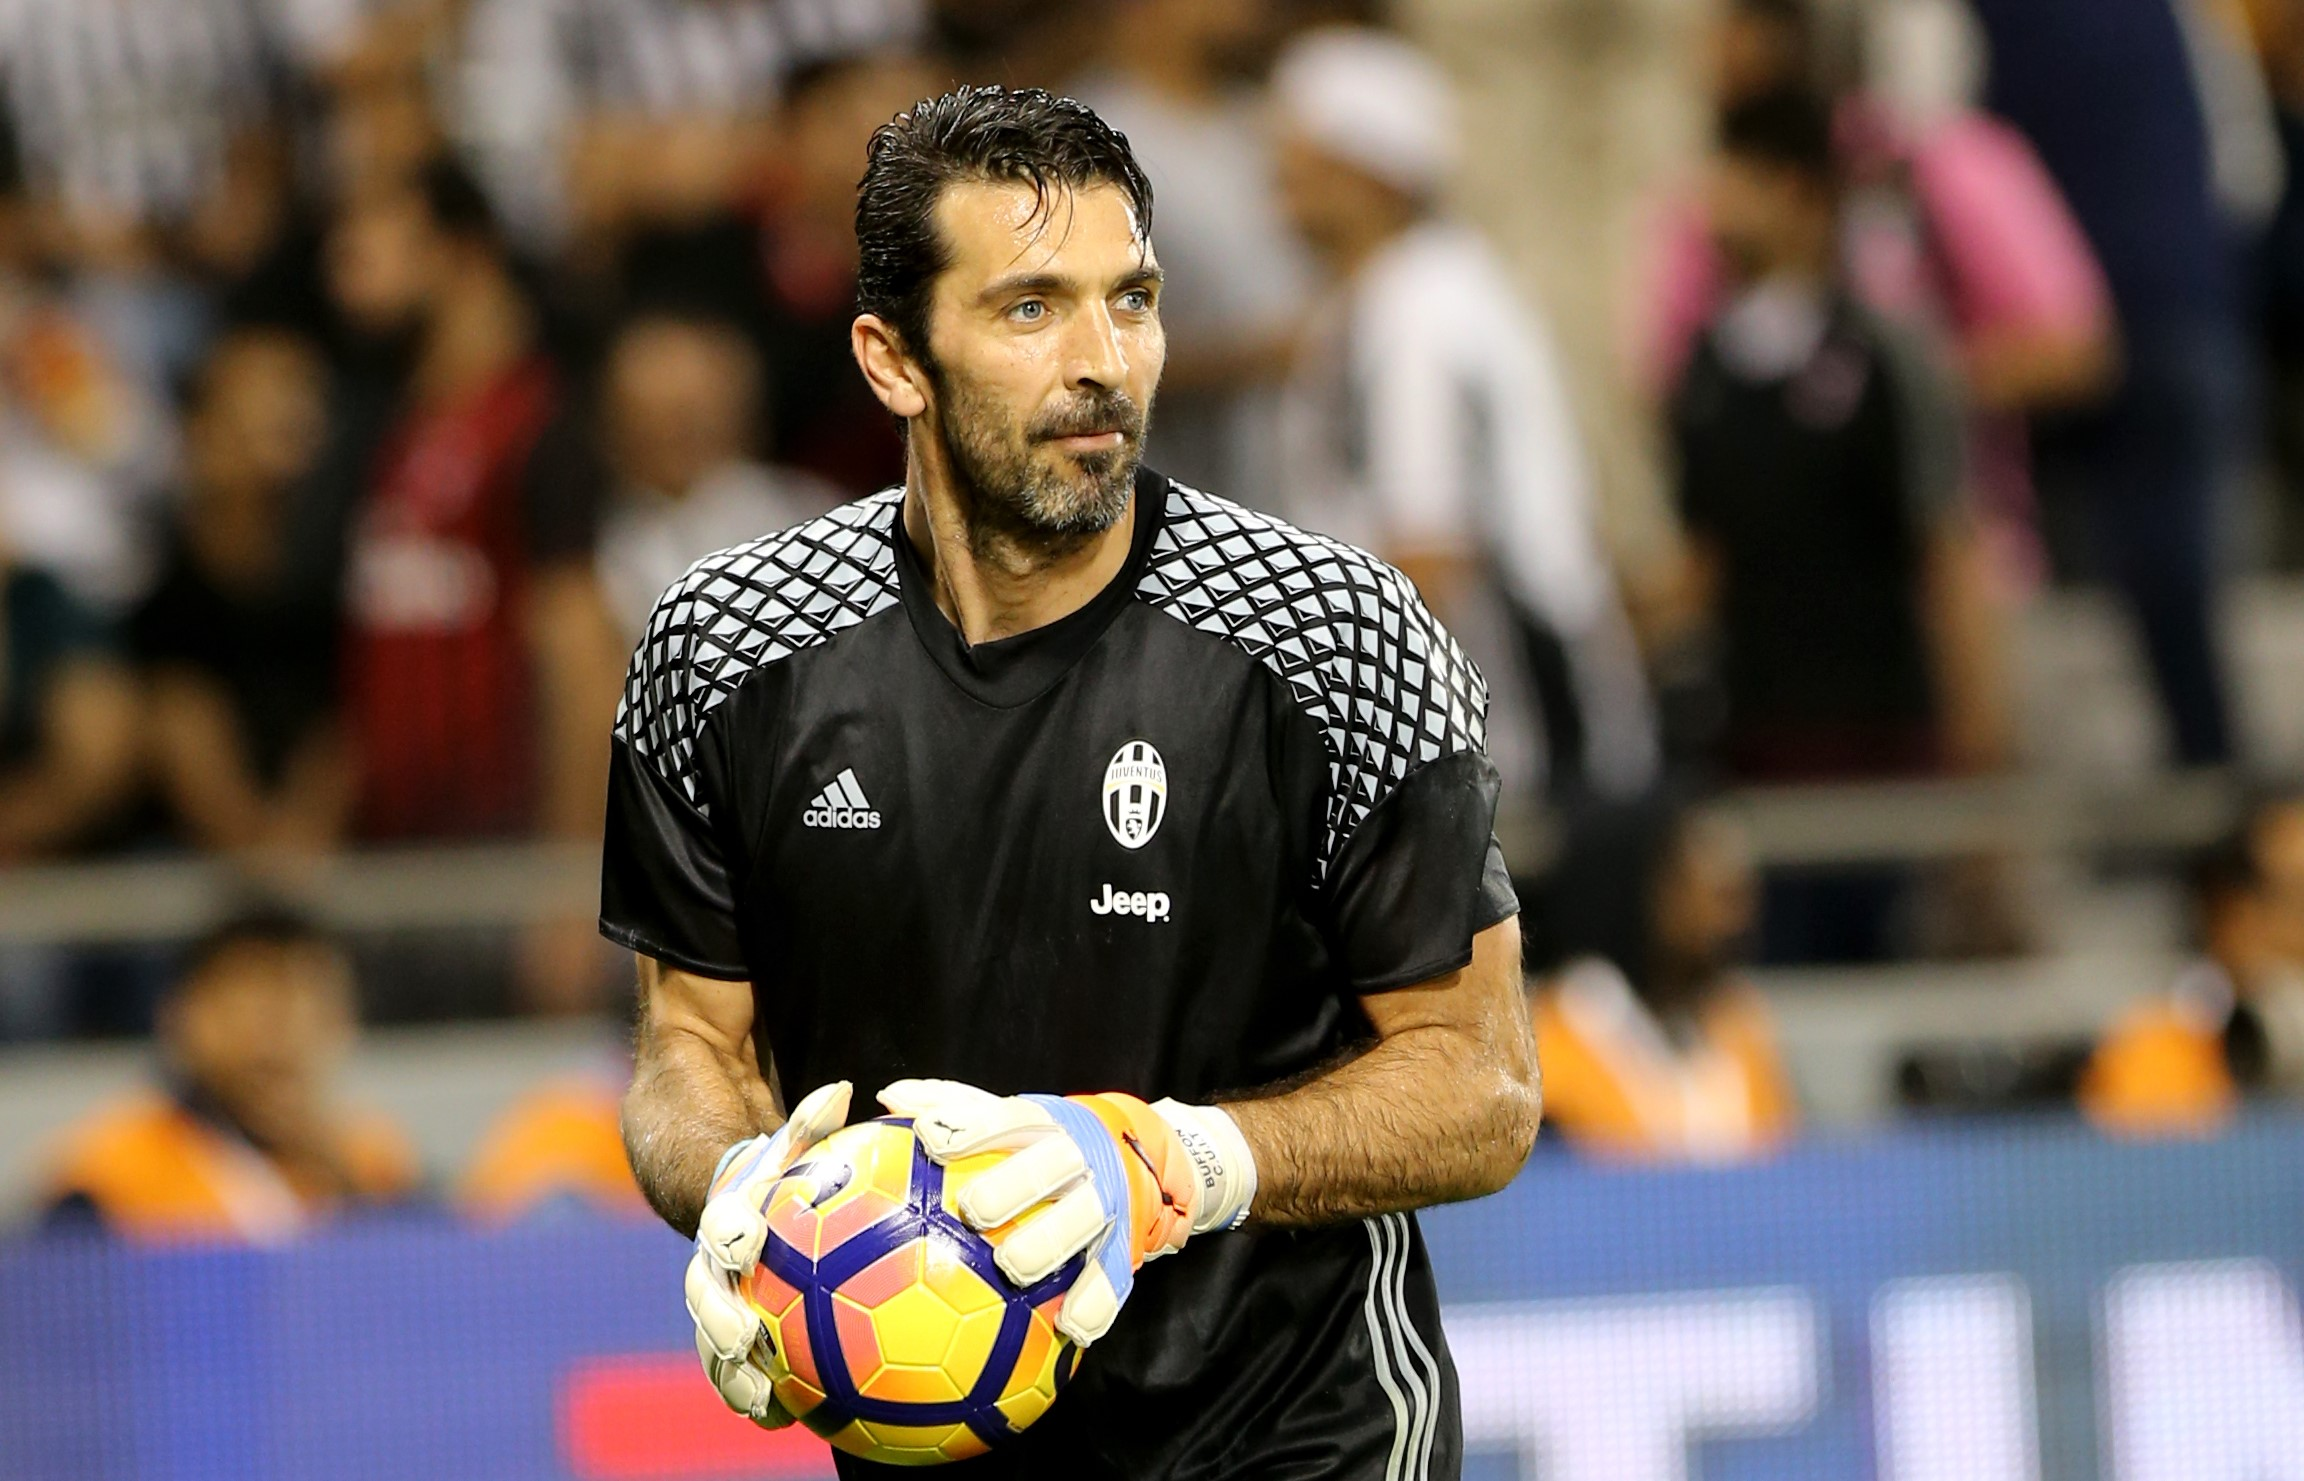 https://www.ultimenotiziecalcio.it/wp-content/uploads/2018/01/Buffon-Juventus.jpg